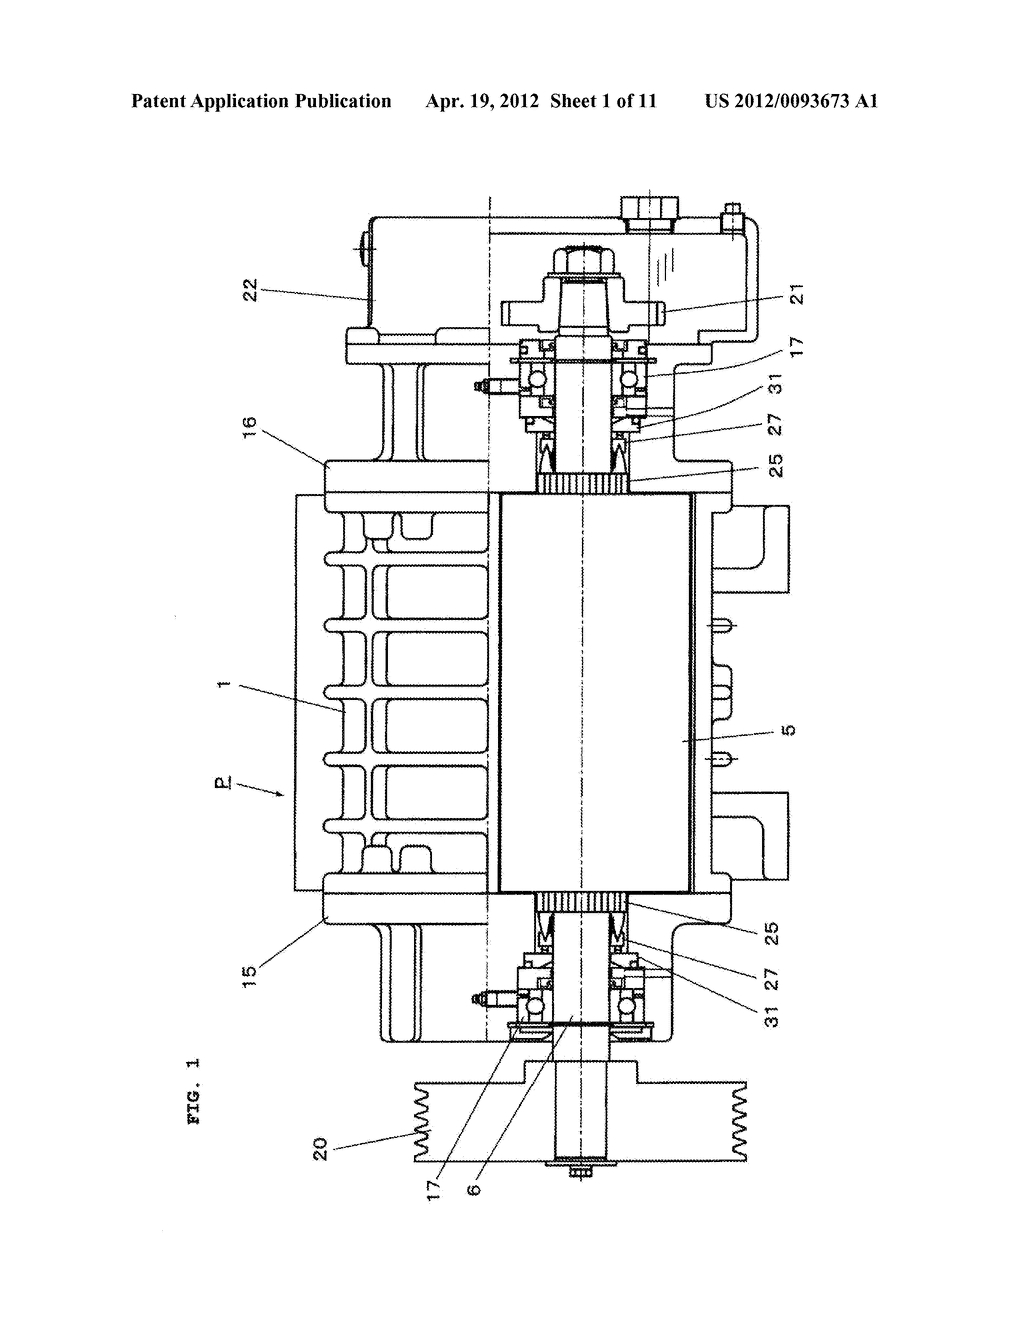 six blade biaxial rotary positive displacement pump diagram rh patentsencyclopedia com positive displacement pump parts How Positive Displacement Pumps Work